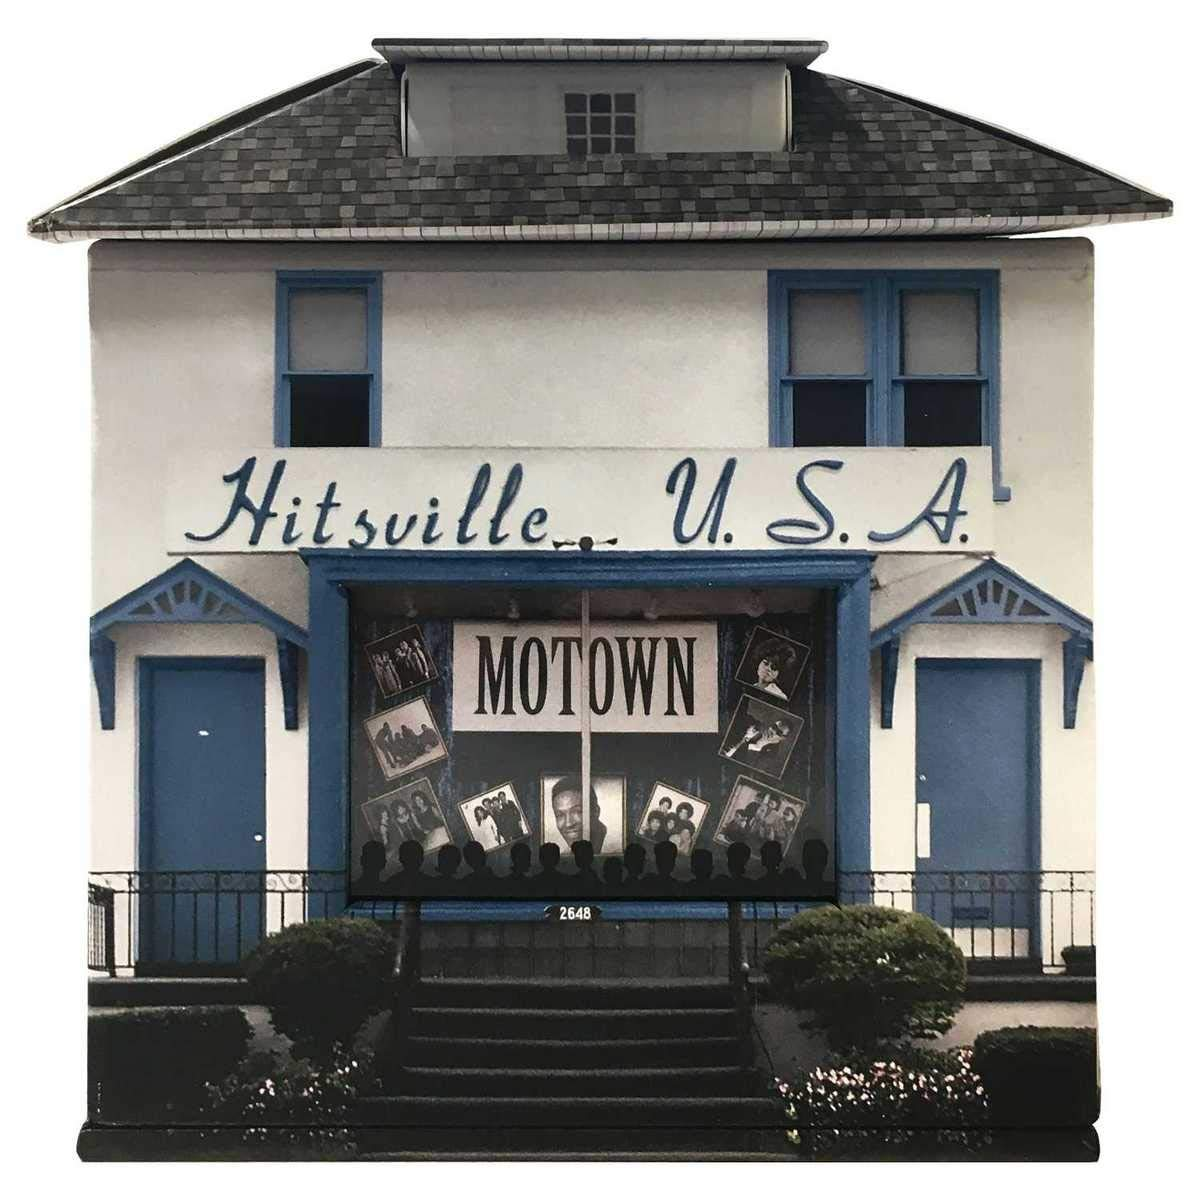 Motown: The Complete No. 1's [11 CD Box Set] by Motown